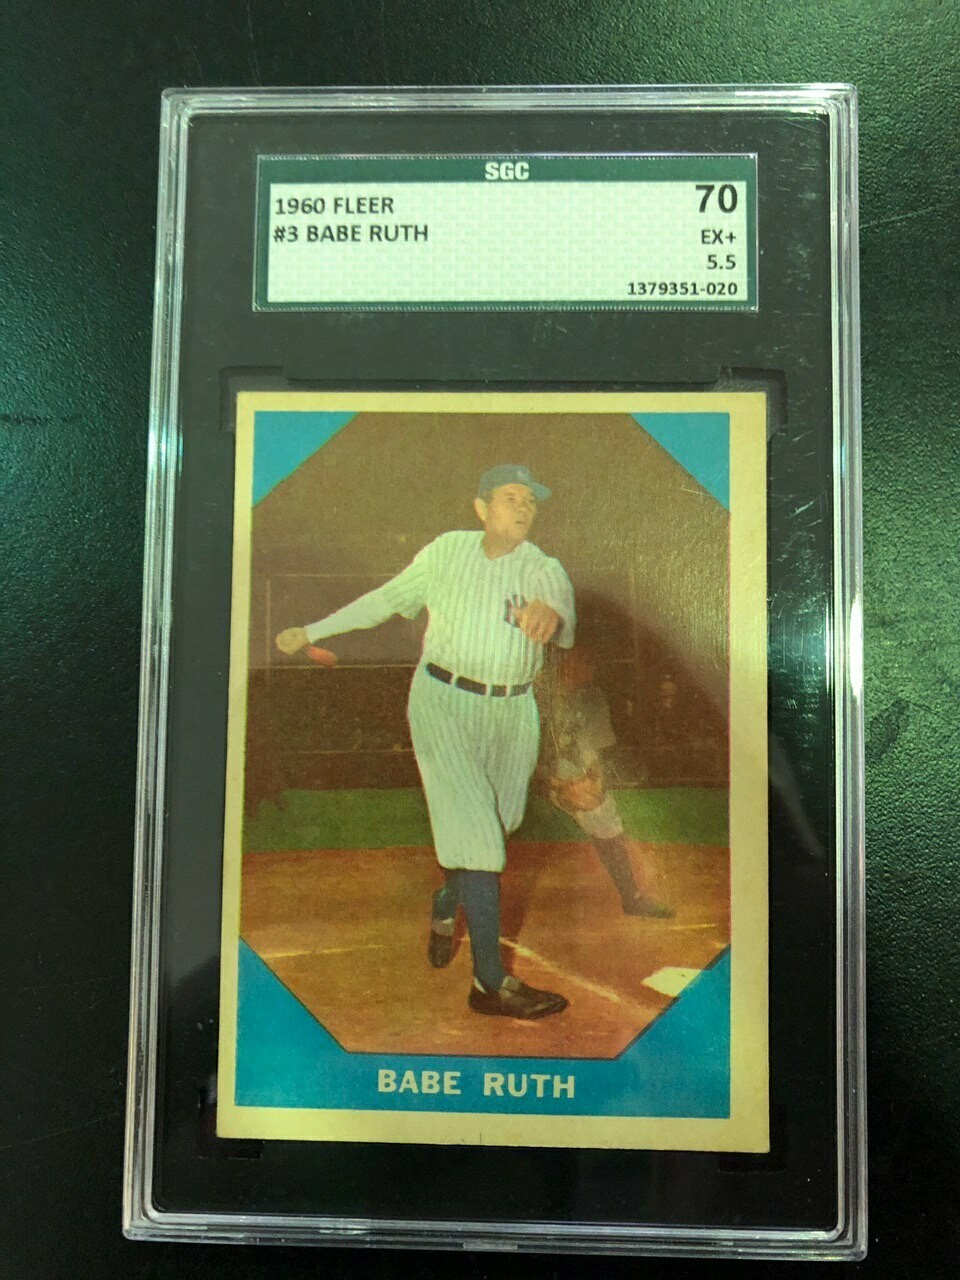 1960 Fleer #3 Babe Ruth SGC graded 5.5, $100